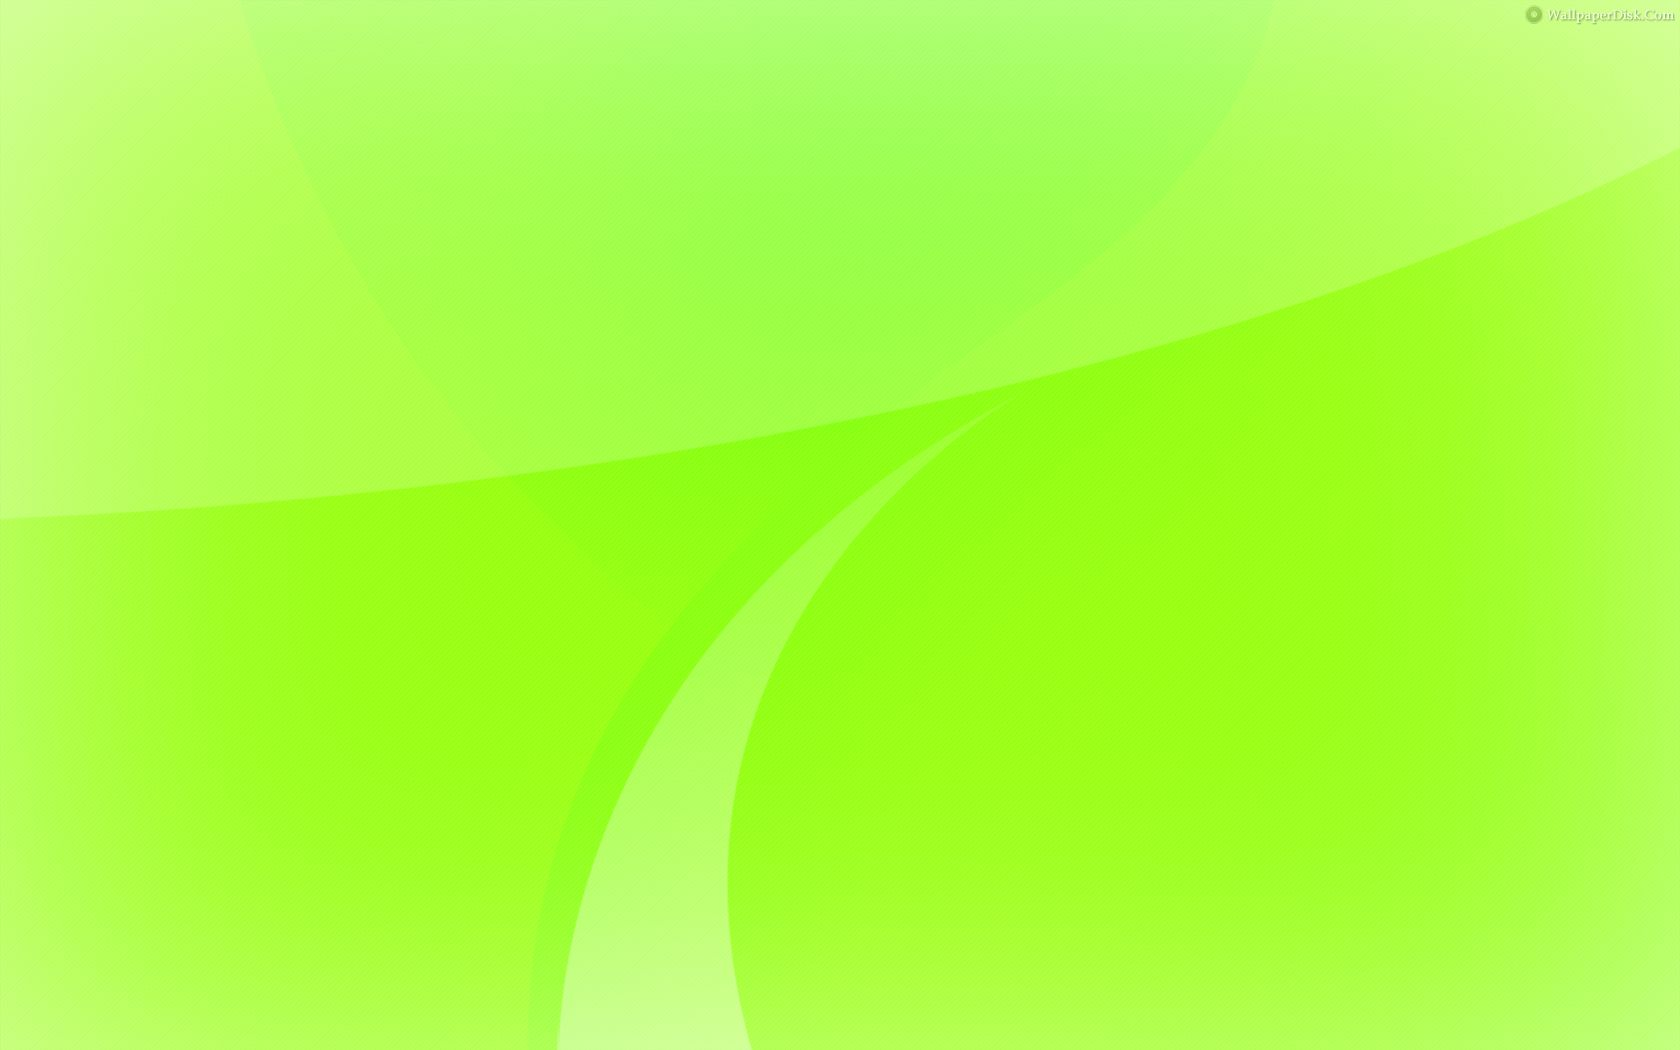 lime color background - photo #48